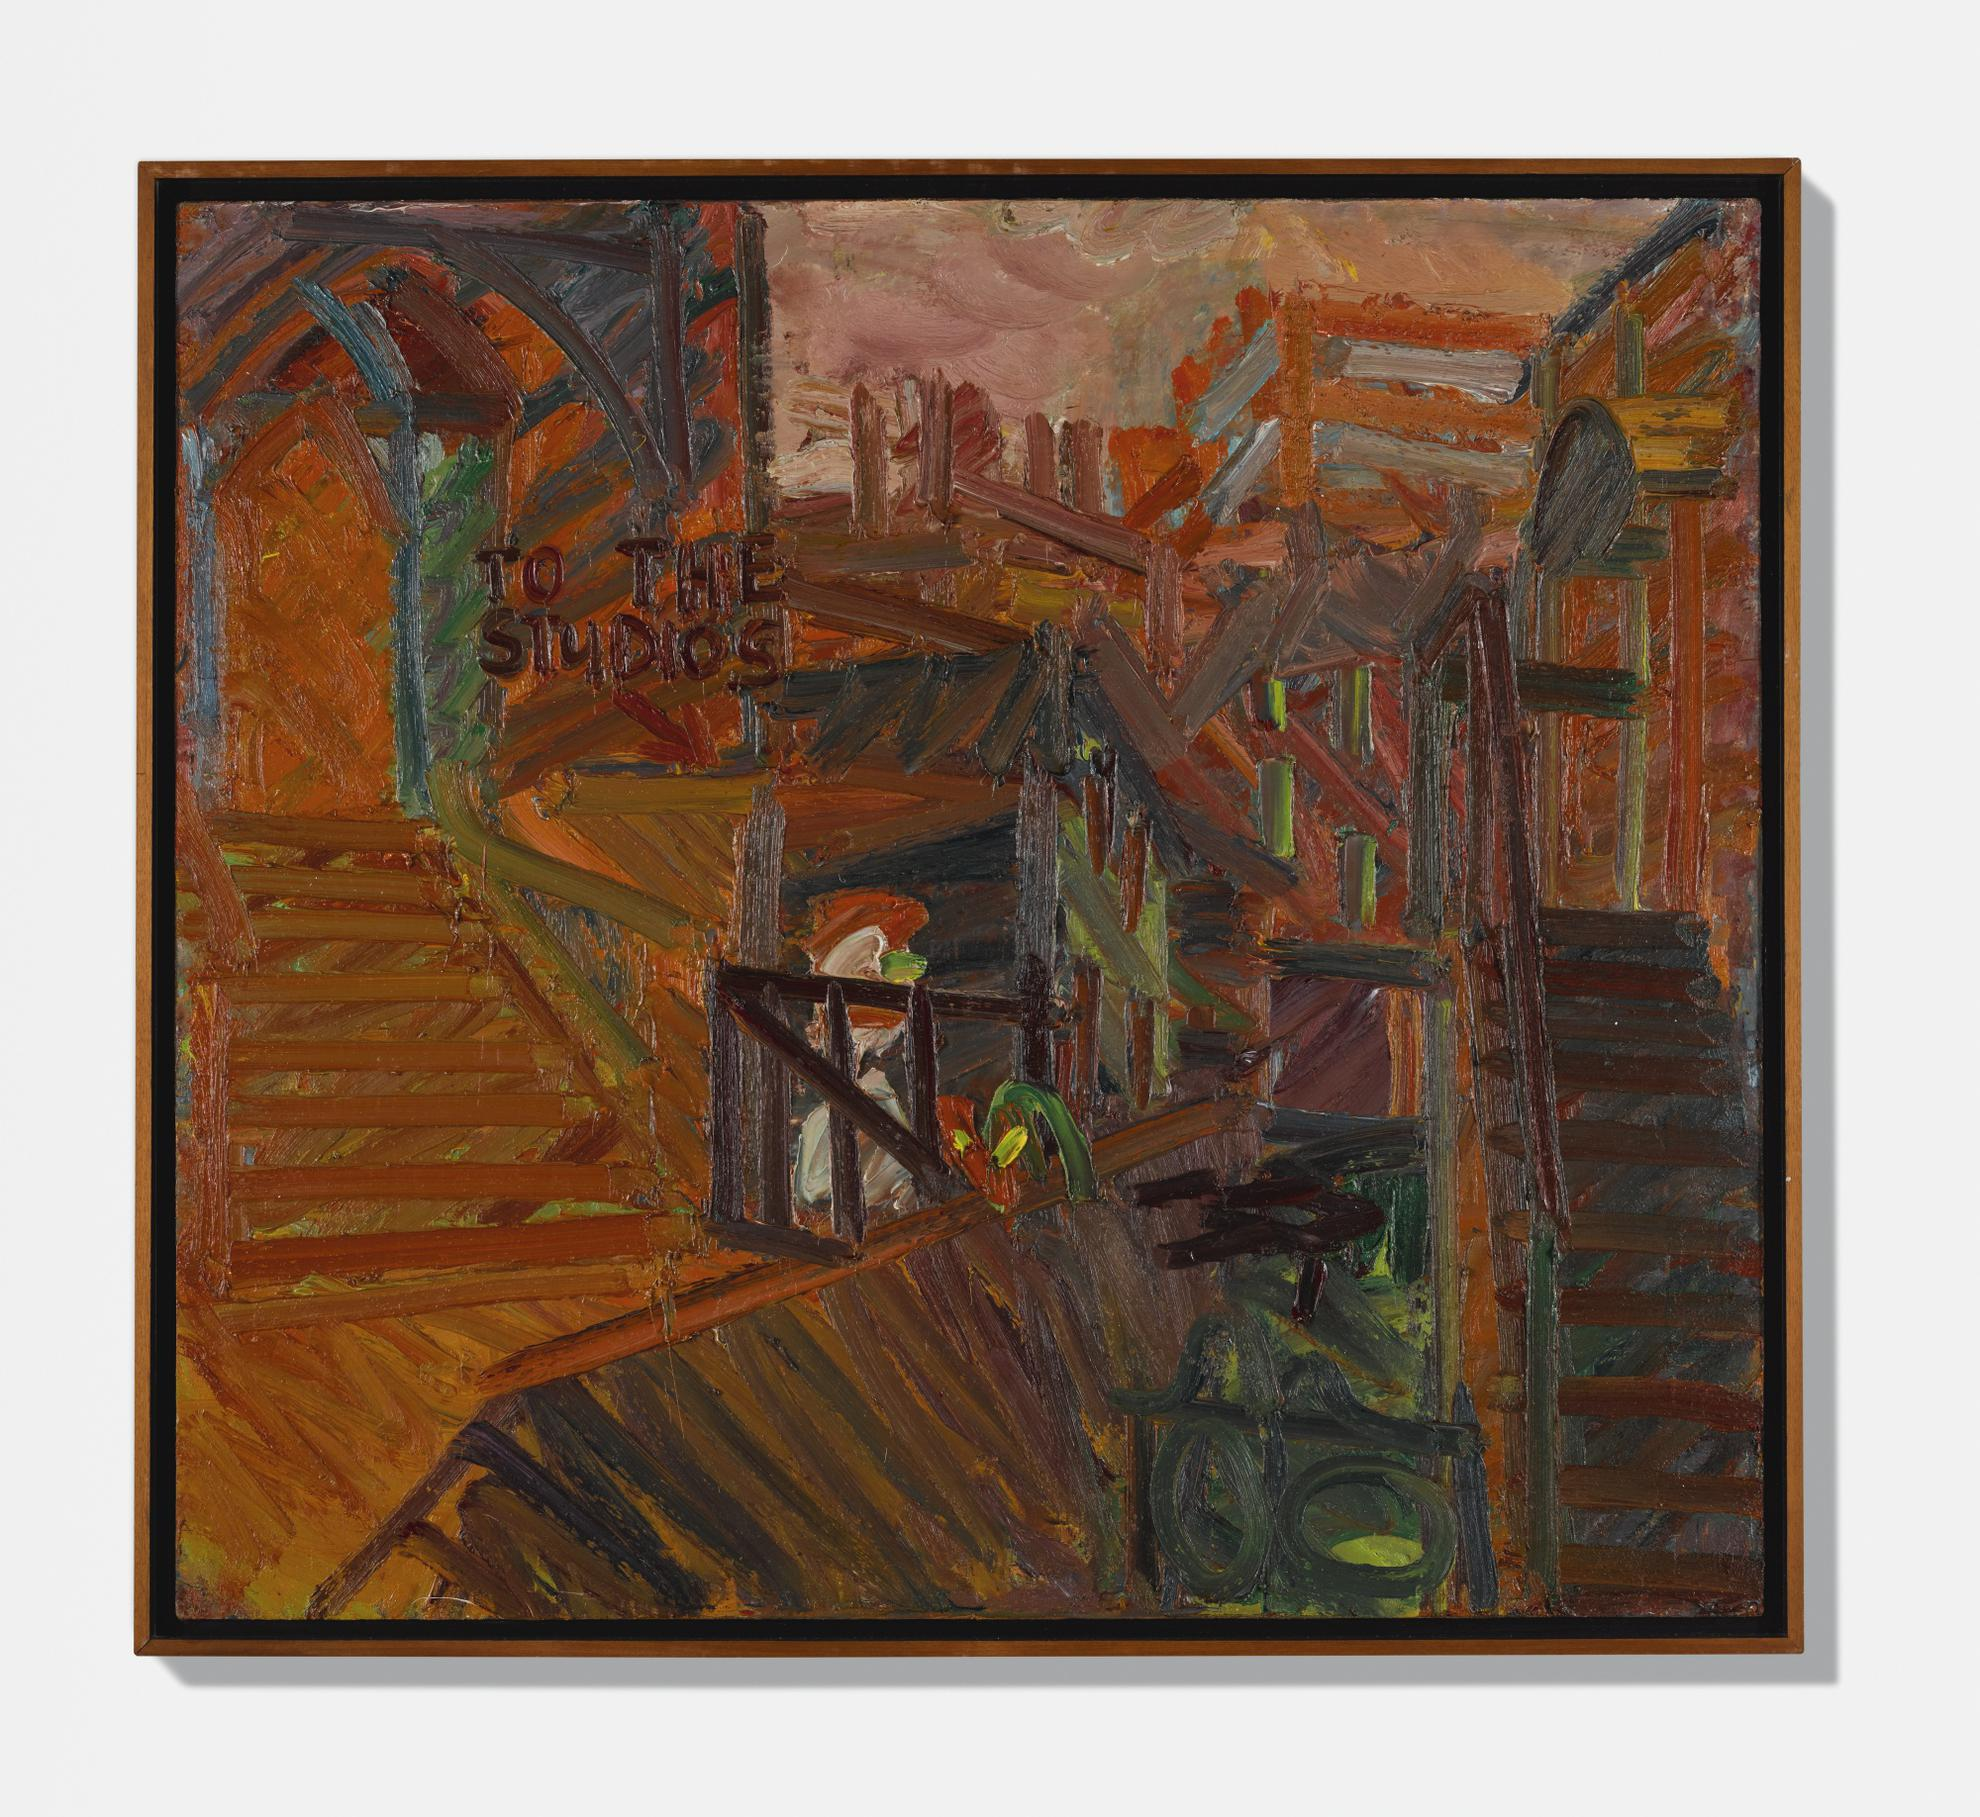 Frank Auerbach-To The Studios-1977